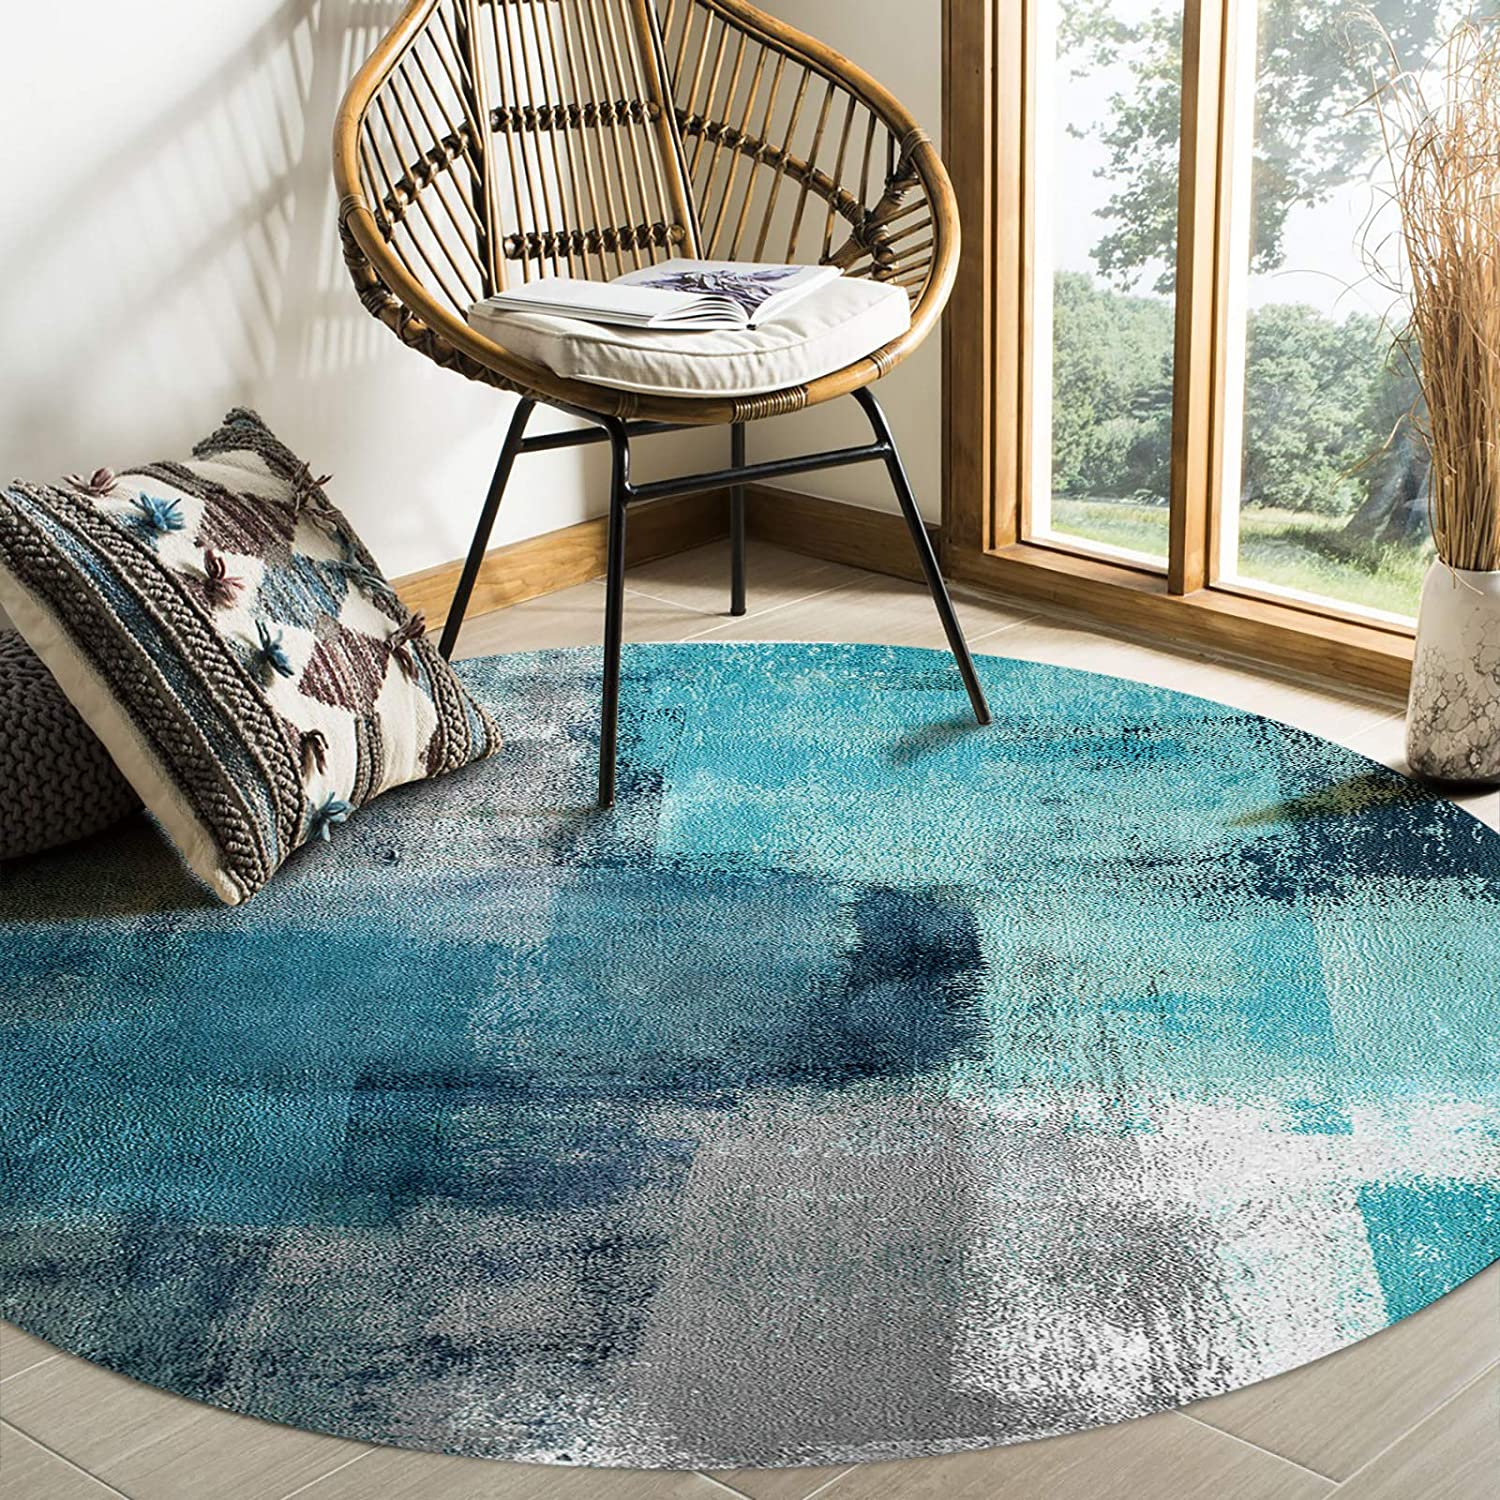 Large Round Area Rug 送料無料 新品 for Living Room and Grey ついに入荷 Turquoise Abstract